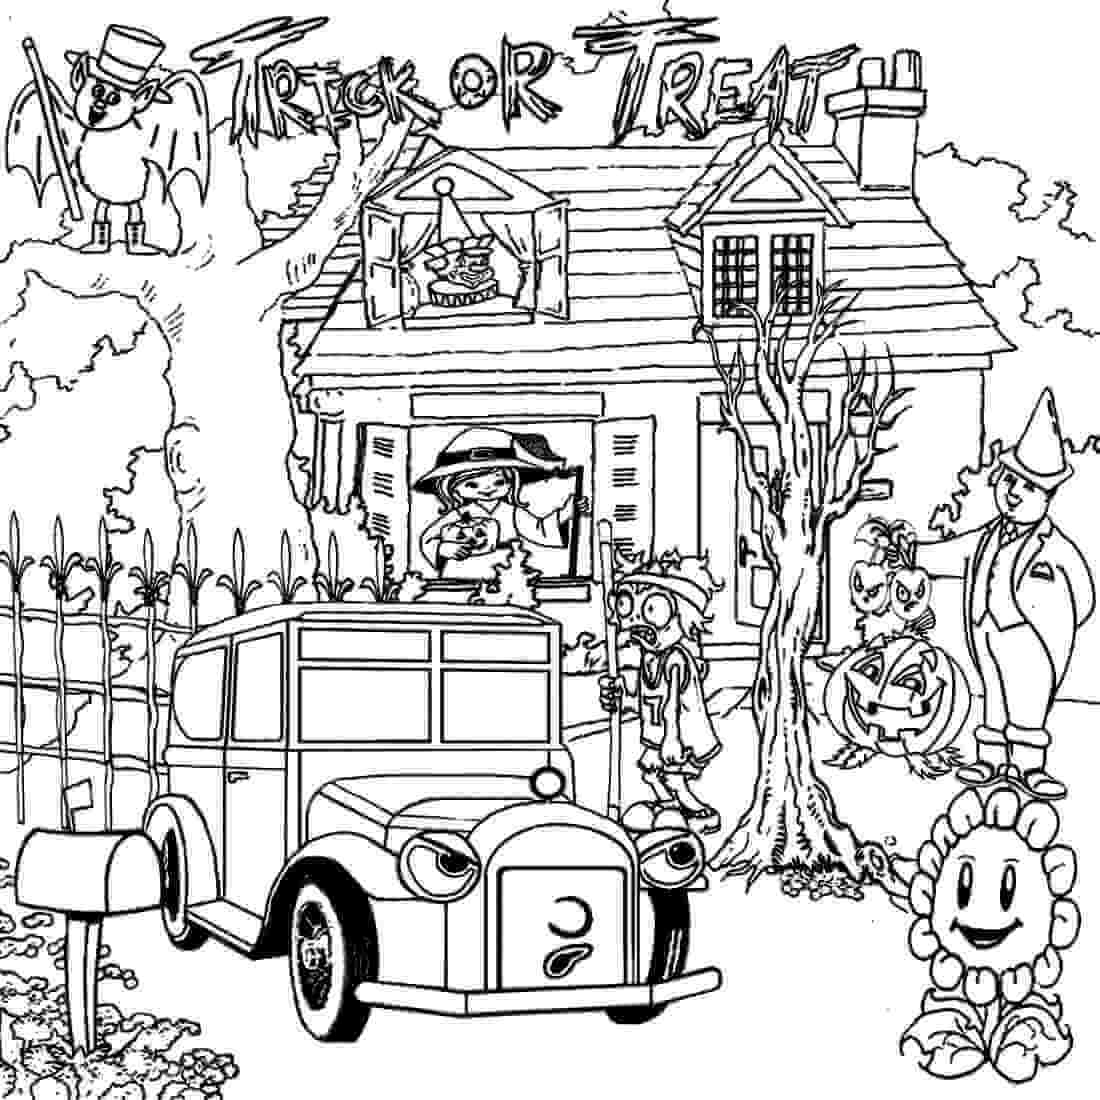 25 Free Printable Haunted House Coloring Pages For Kids à Trick Or Treat Coloring Book: Trick Or